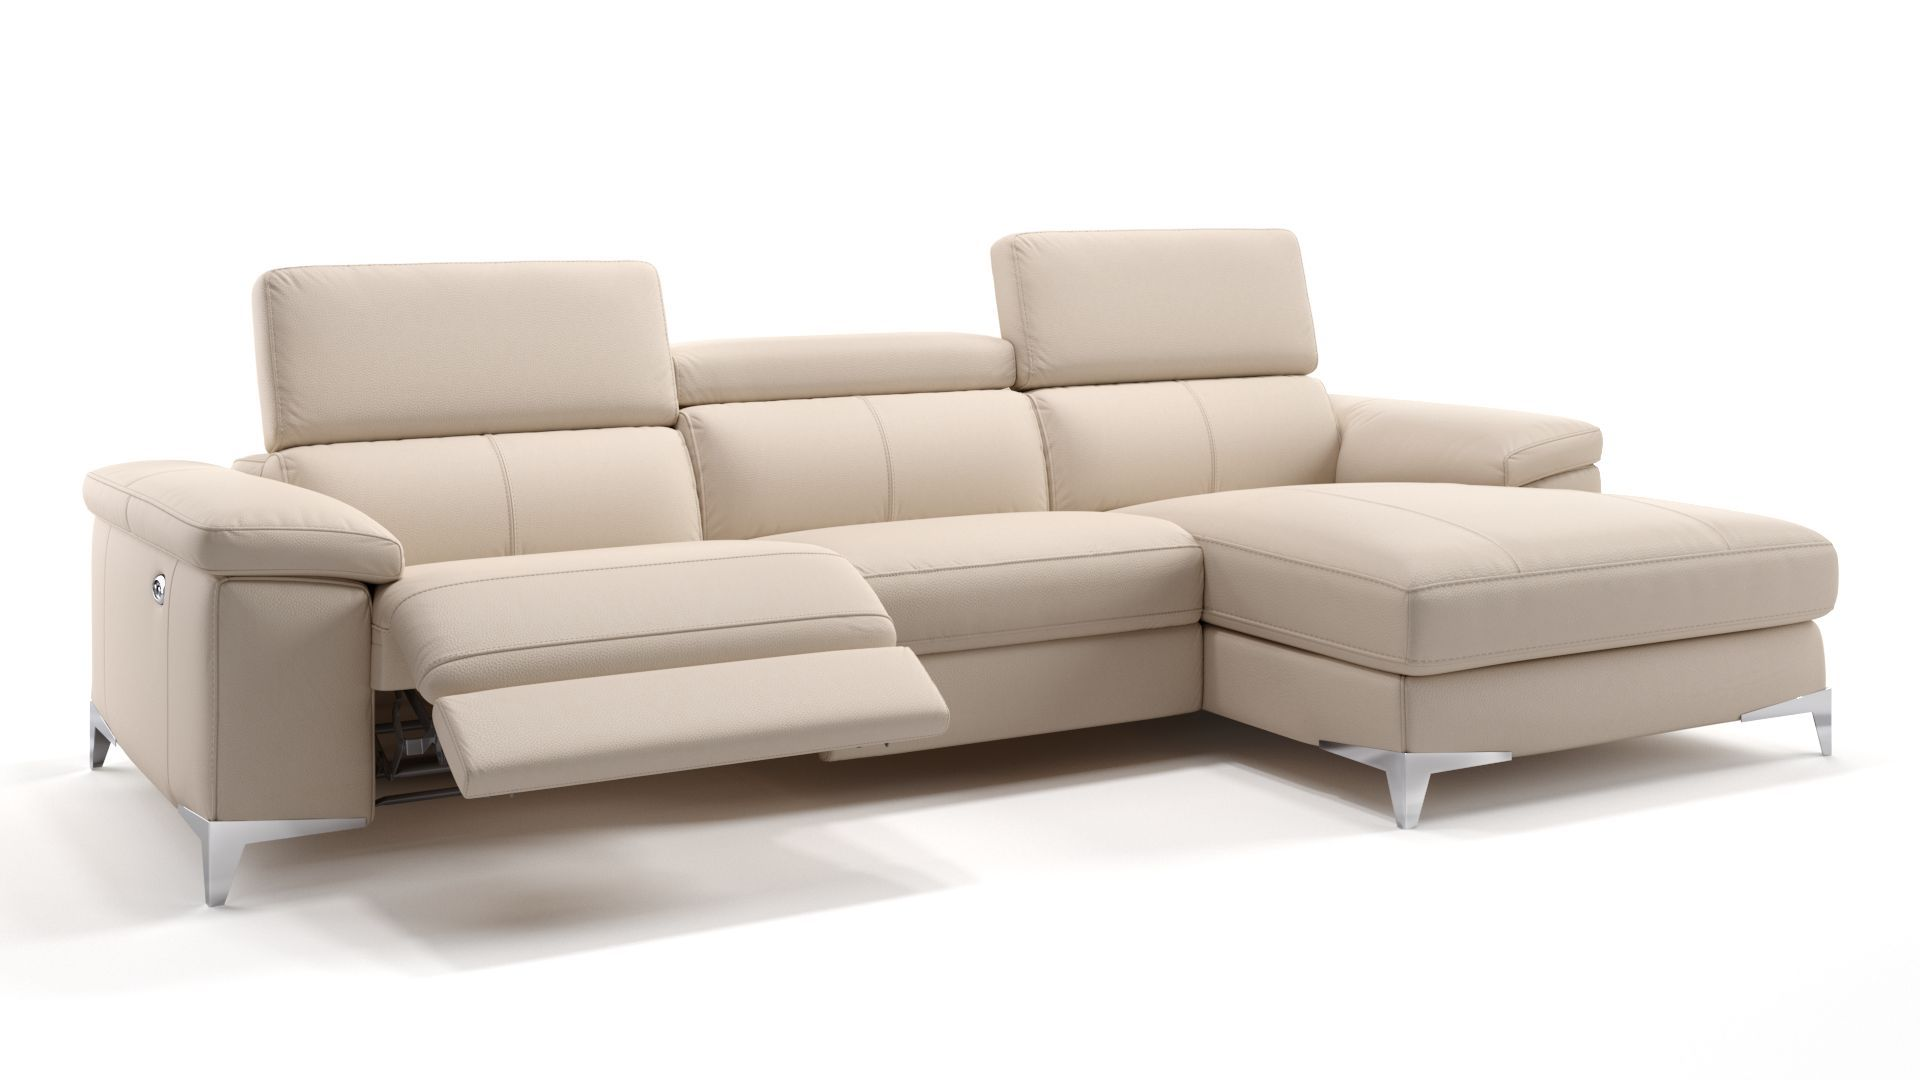 Venosa Leder Eckcouch In 2020 Comfy Chairs Sectional Couch Sofa